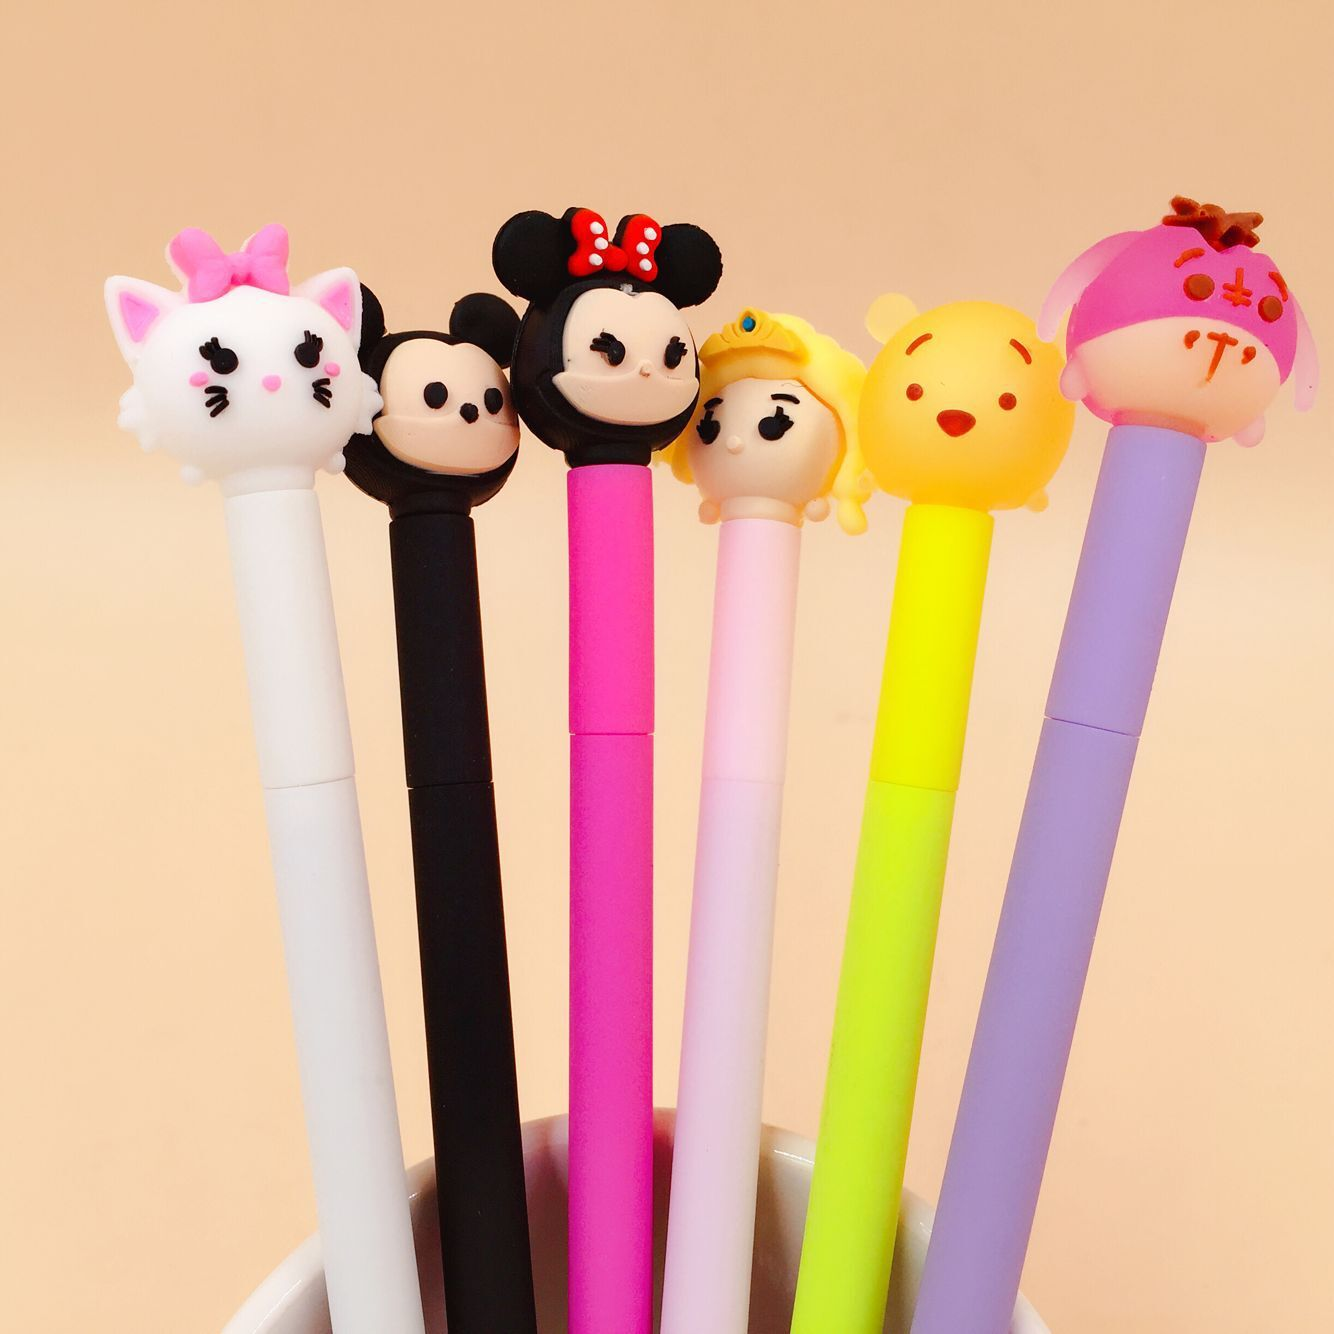 48 Pcs/lot Cartoon Happiness Family Gel Pen Signature Pen Escolar Papelaria School Office Supply Promotional Gift